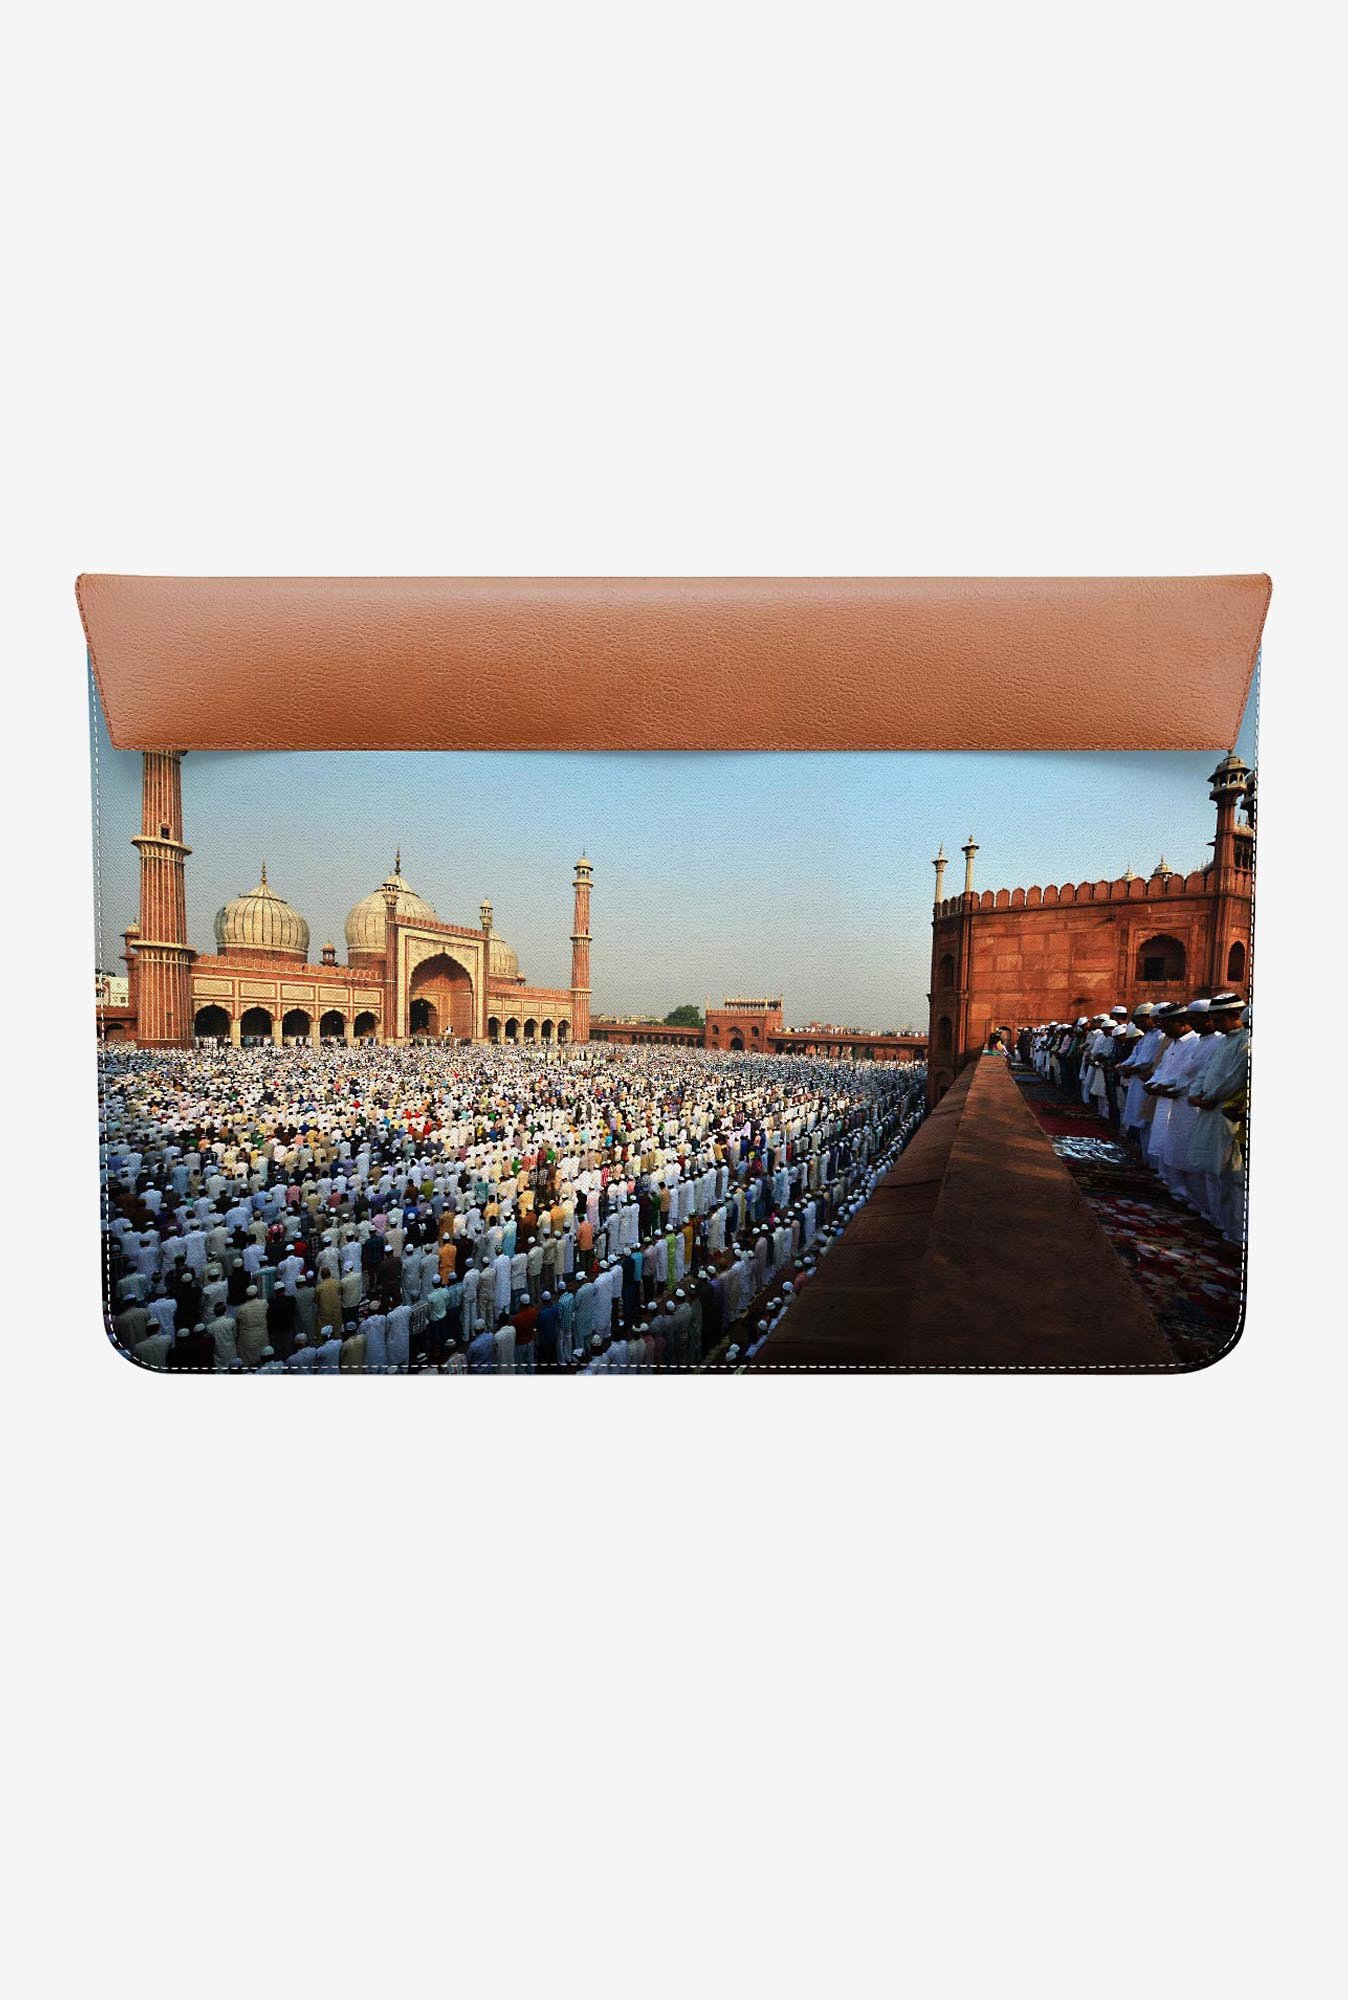 "DailyObjects Jama Masjid MacBook Air 11"" Envelope Sleeve"